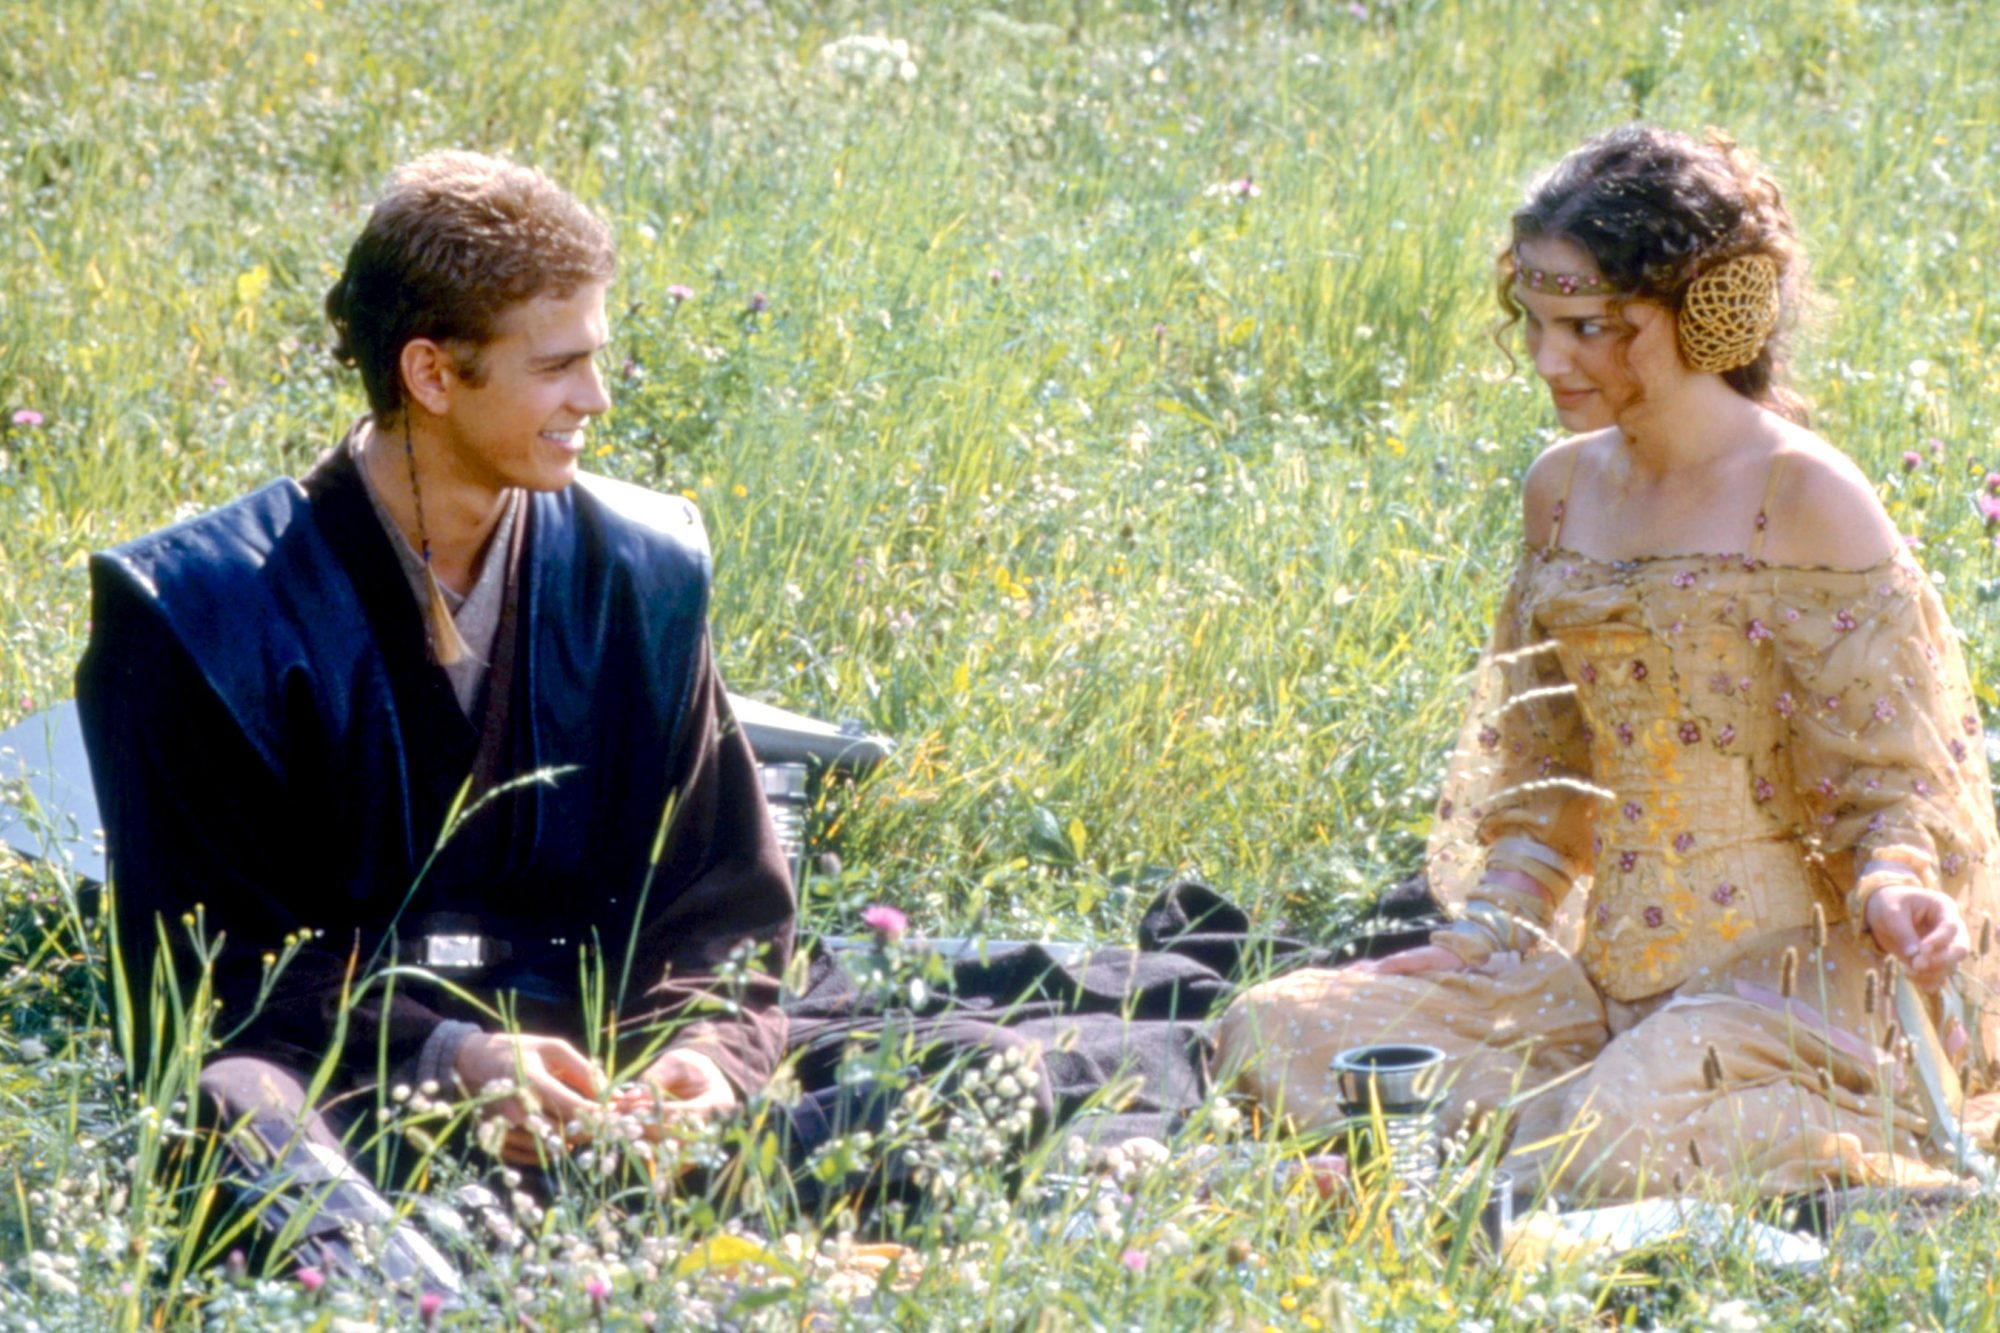 STAR WARS: EPISODE II- ATTACK OF THE CLONES, Hayden Christensen, Natalie Portman, 2002. ©Lucasfilm L